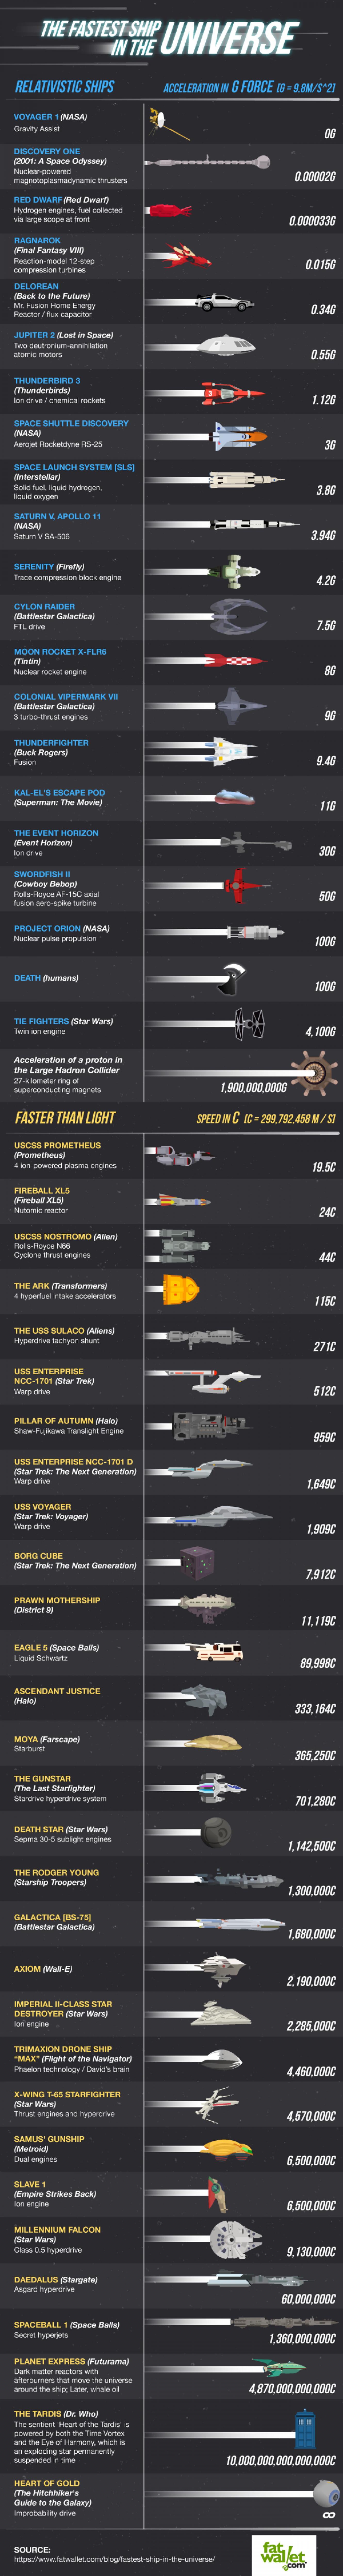 How Fast are Sci-Fi Ships? Infographic